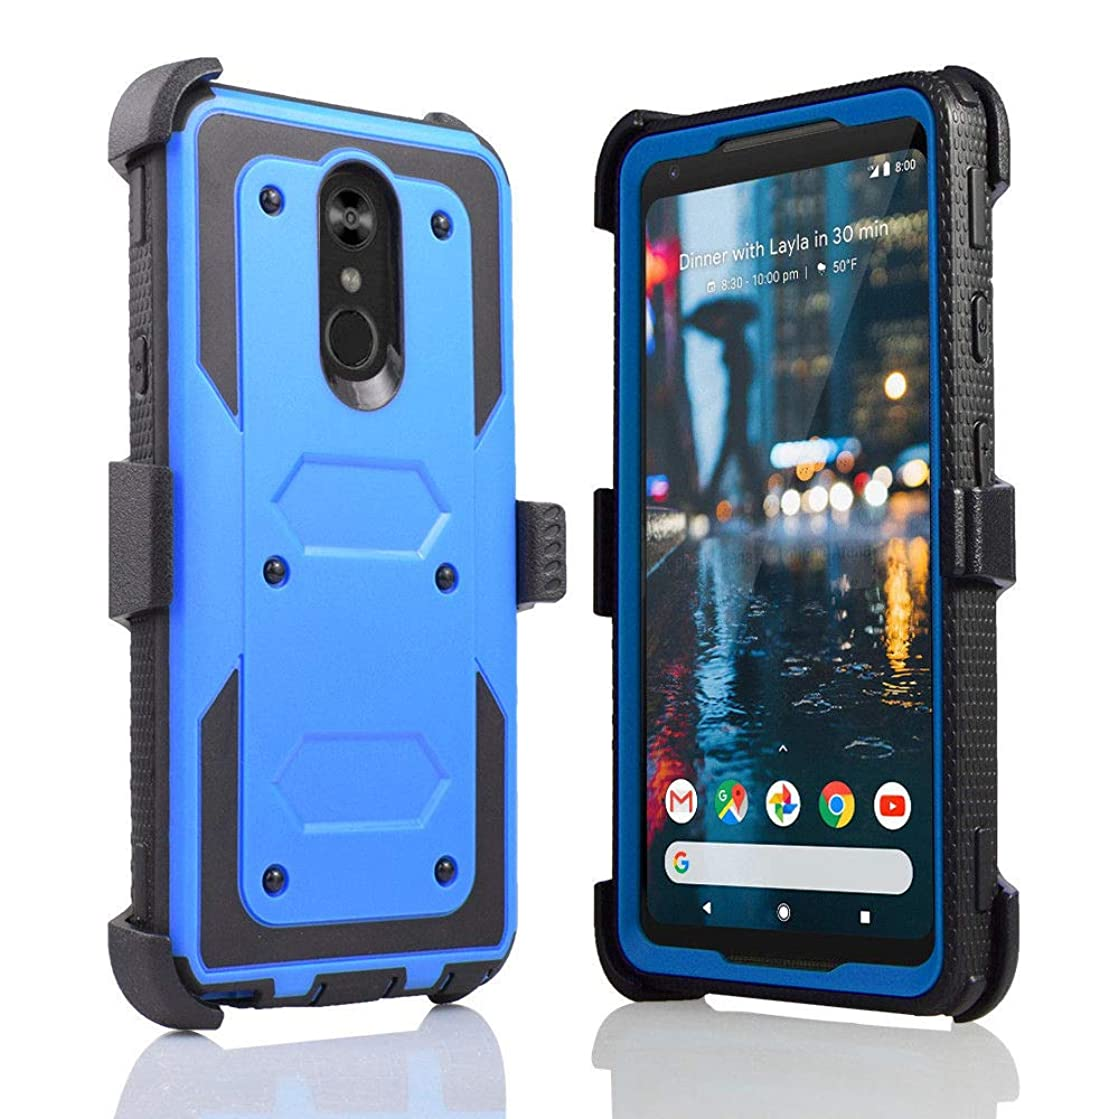 Compatible fit LG Stylo 4, Stylus 4, LG Q Stylo 4 (Q710) 2018 (Metro PCS, T-Mobile, Cricket etc) Full Body Rugged Holster Explorer Armor Case with Belt Clip & Built in Screen Protector (Blue)